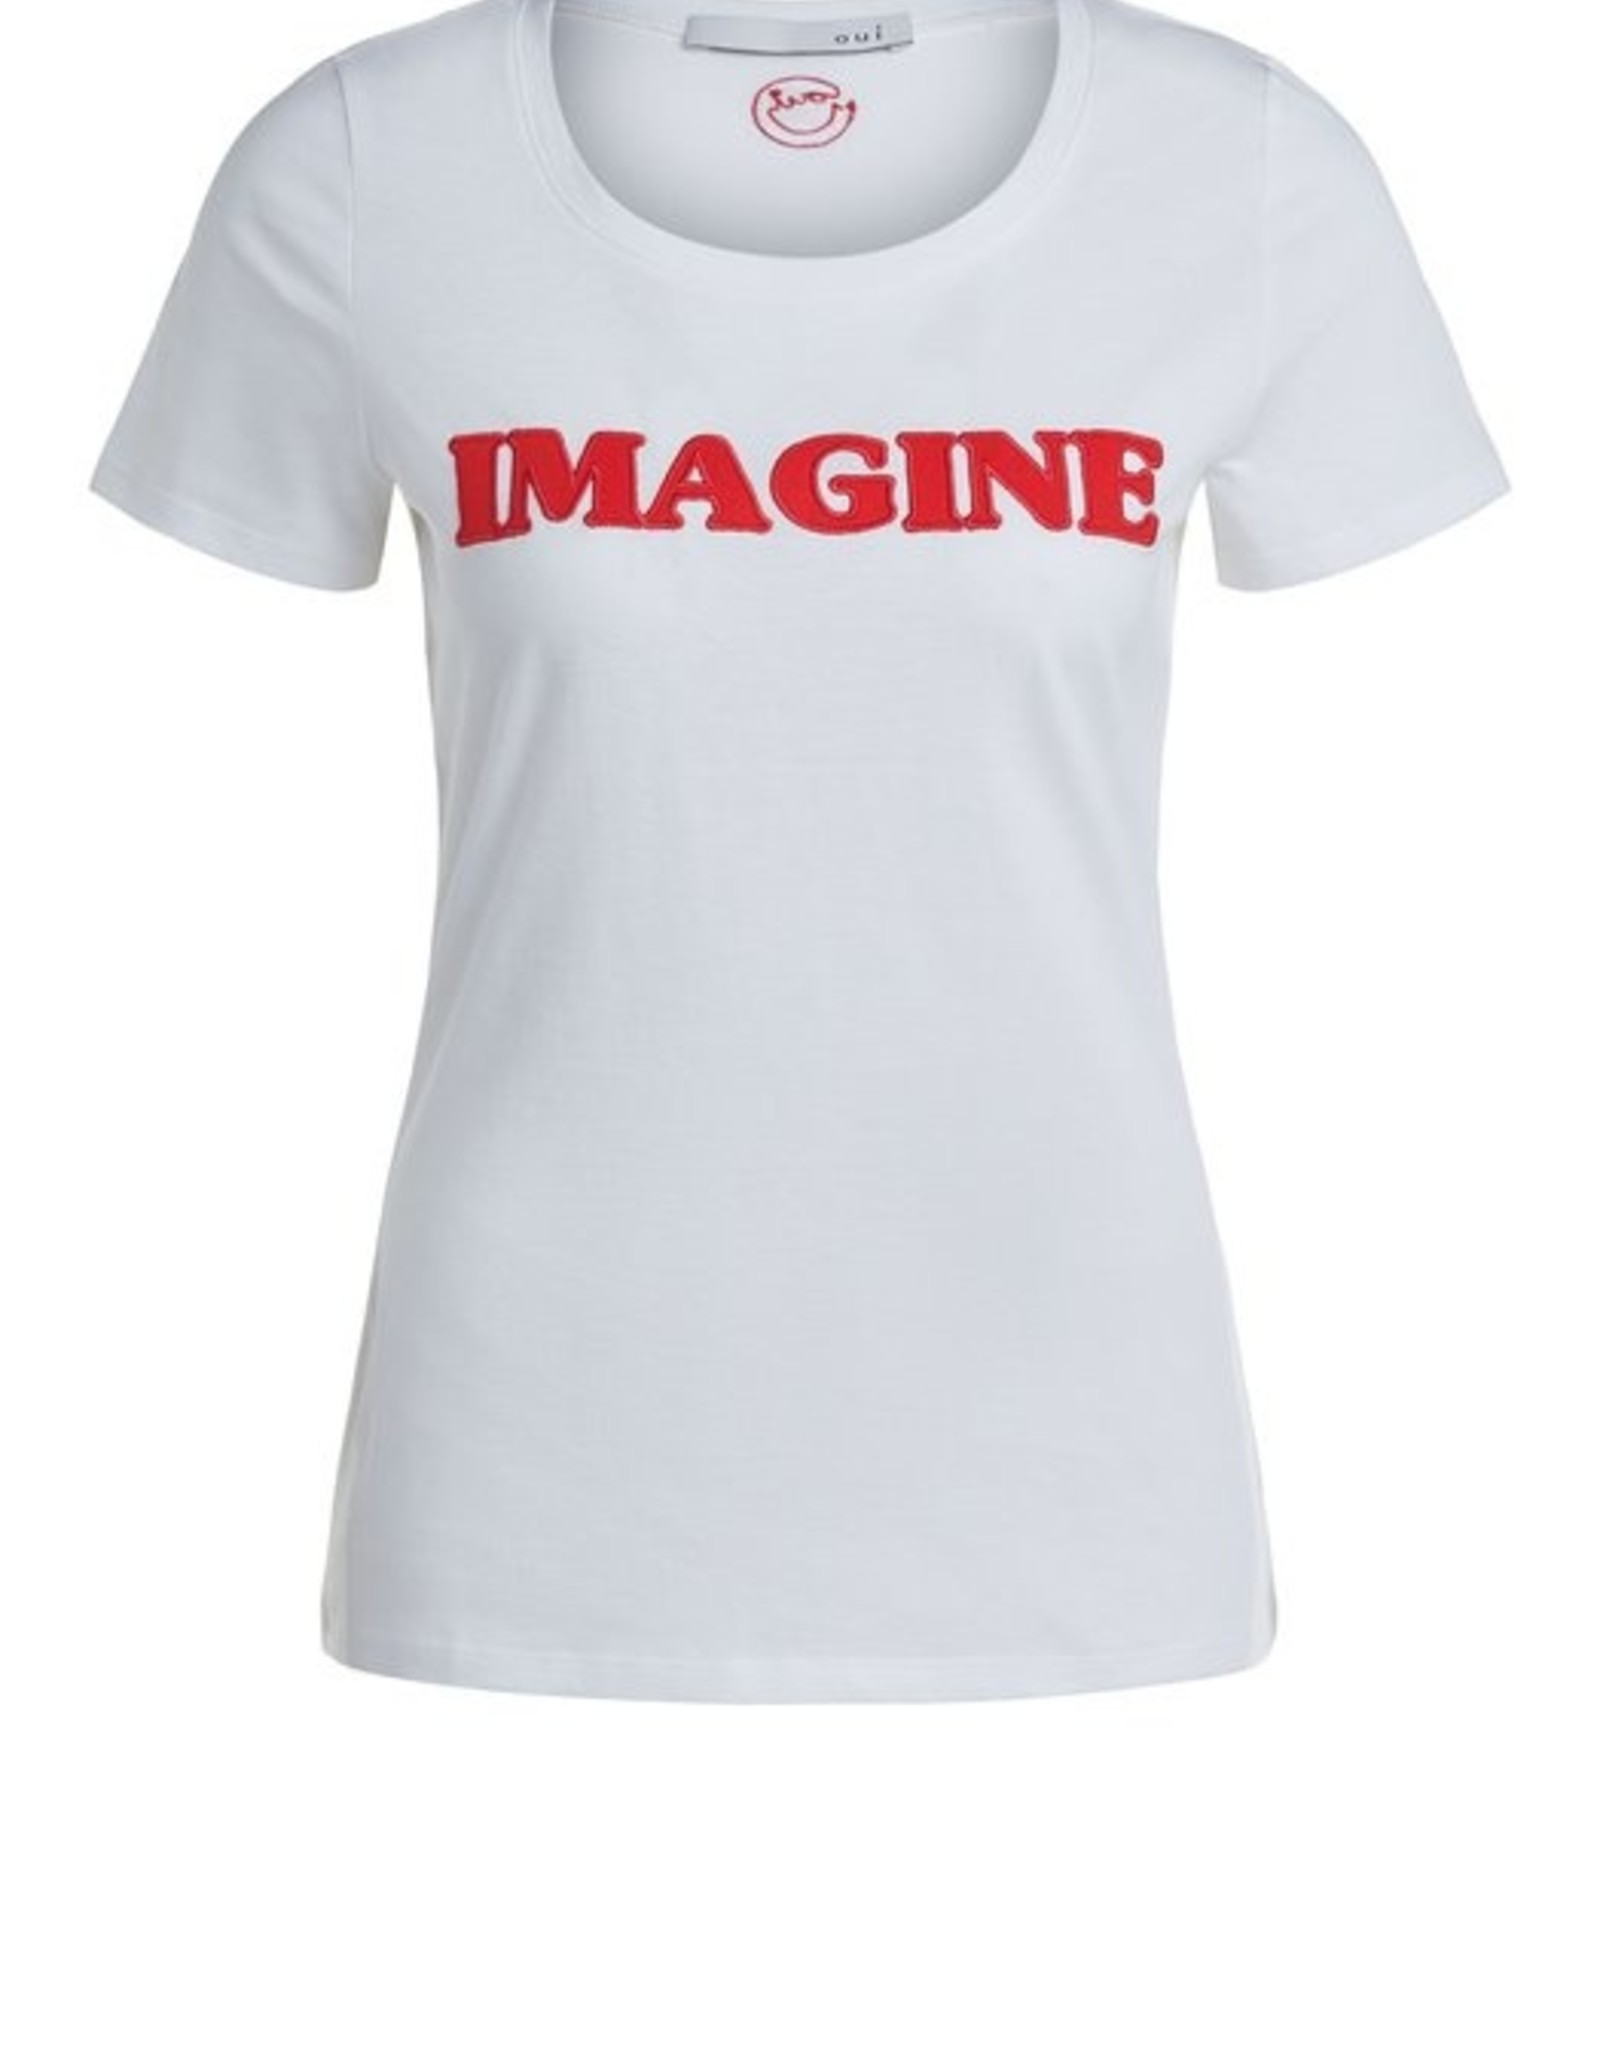 Ouí T-Shirt Imagine